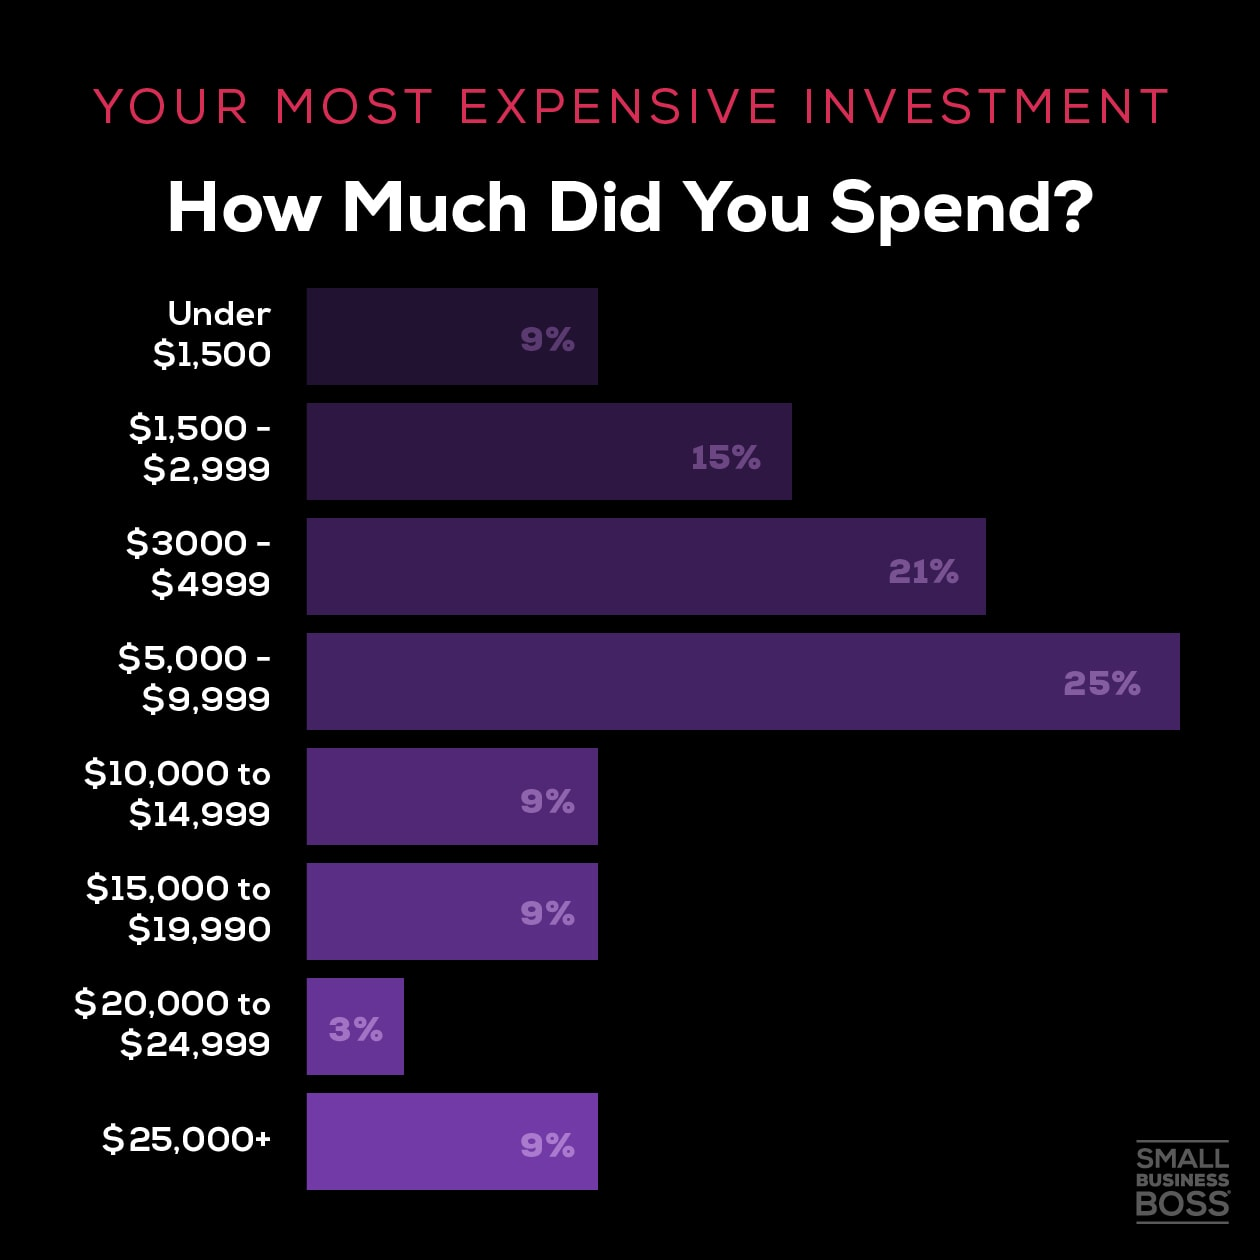 Most expensive investment